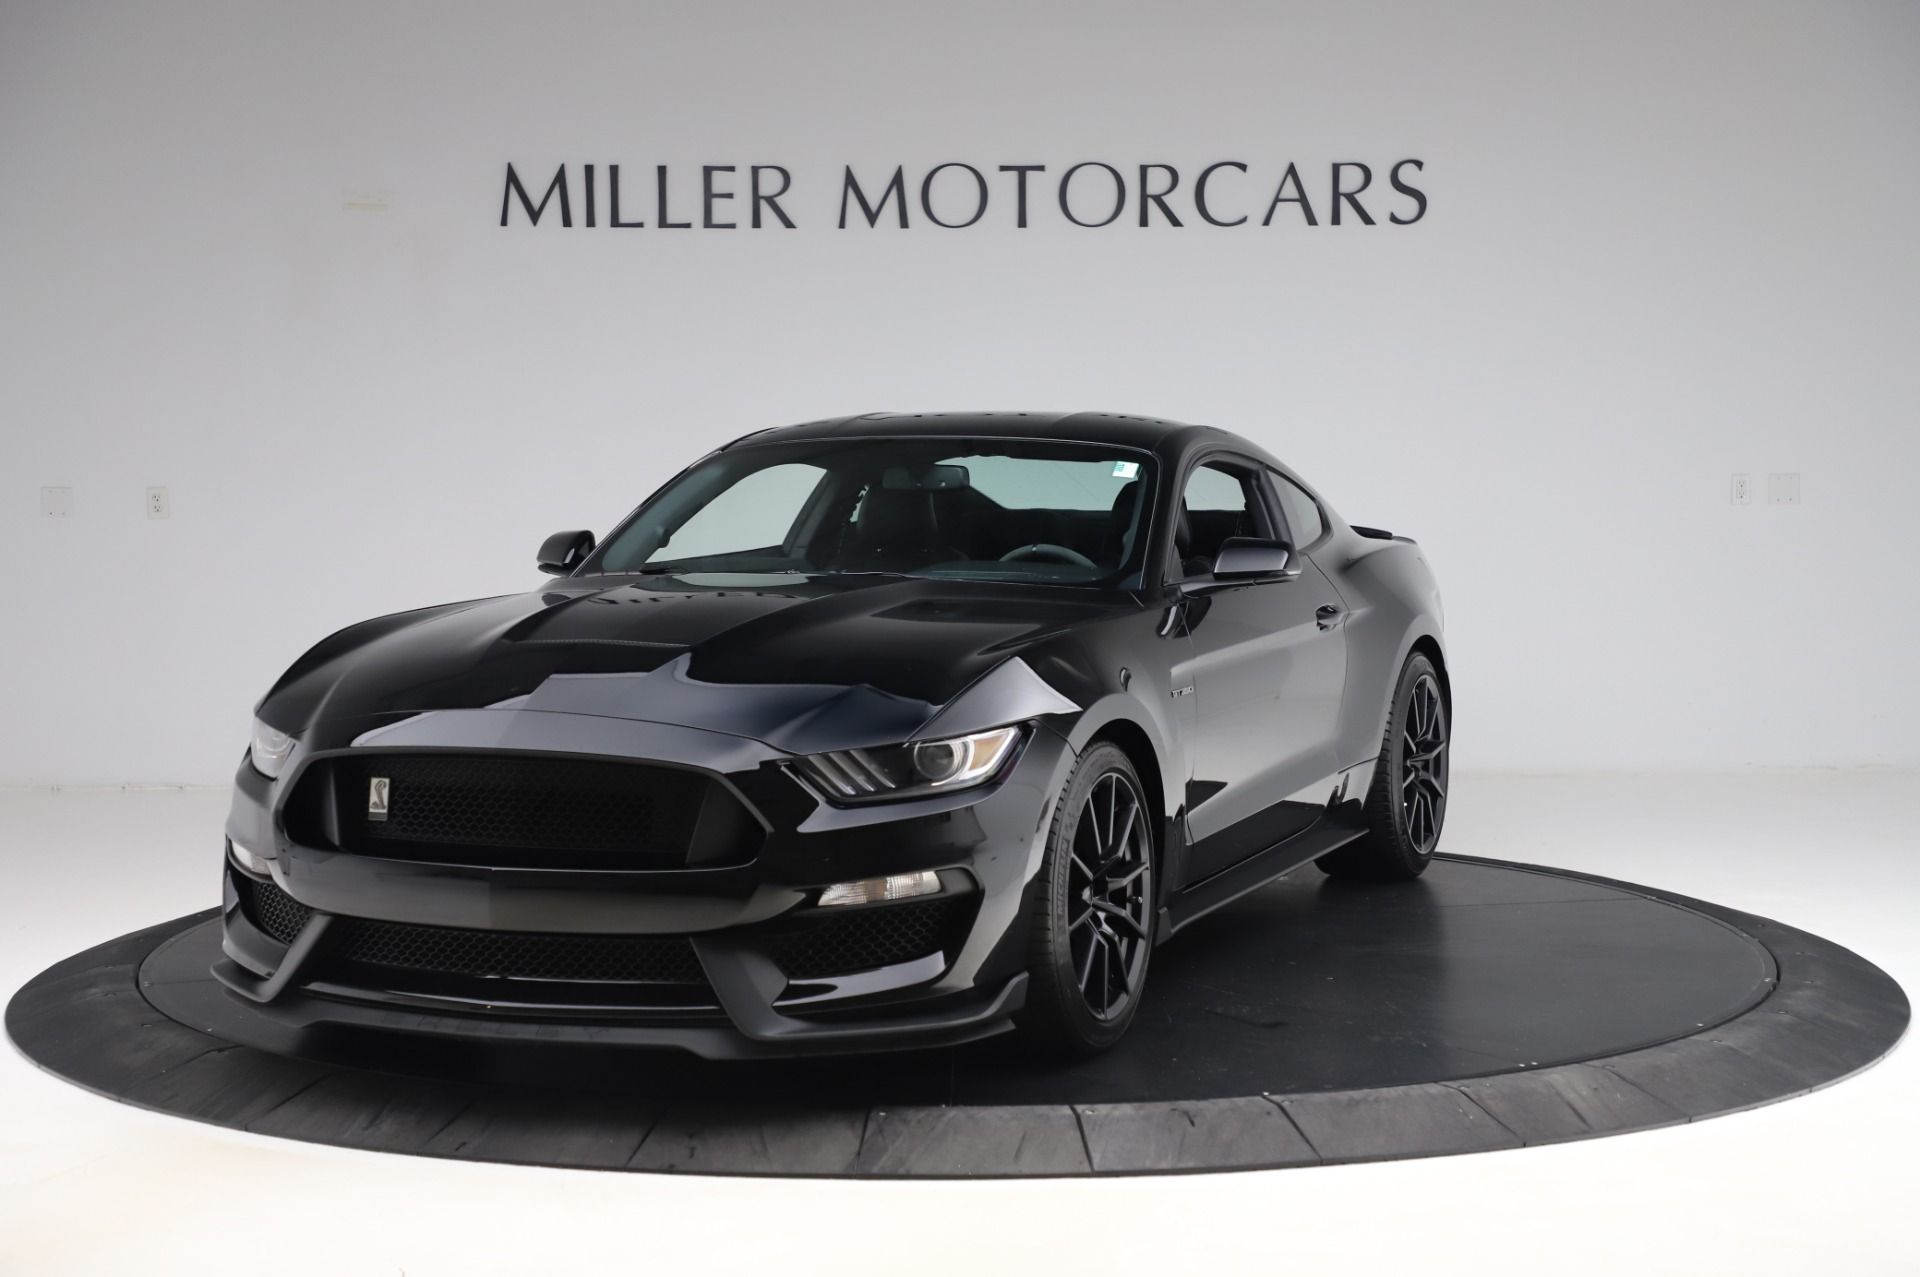 Used 2016 Ford Mustang Shelby GT350 for sale $47,900 at Aston Martin of Greenwich in Greenwich CT 06830 1